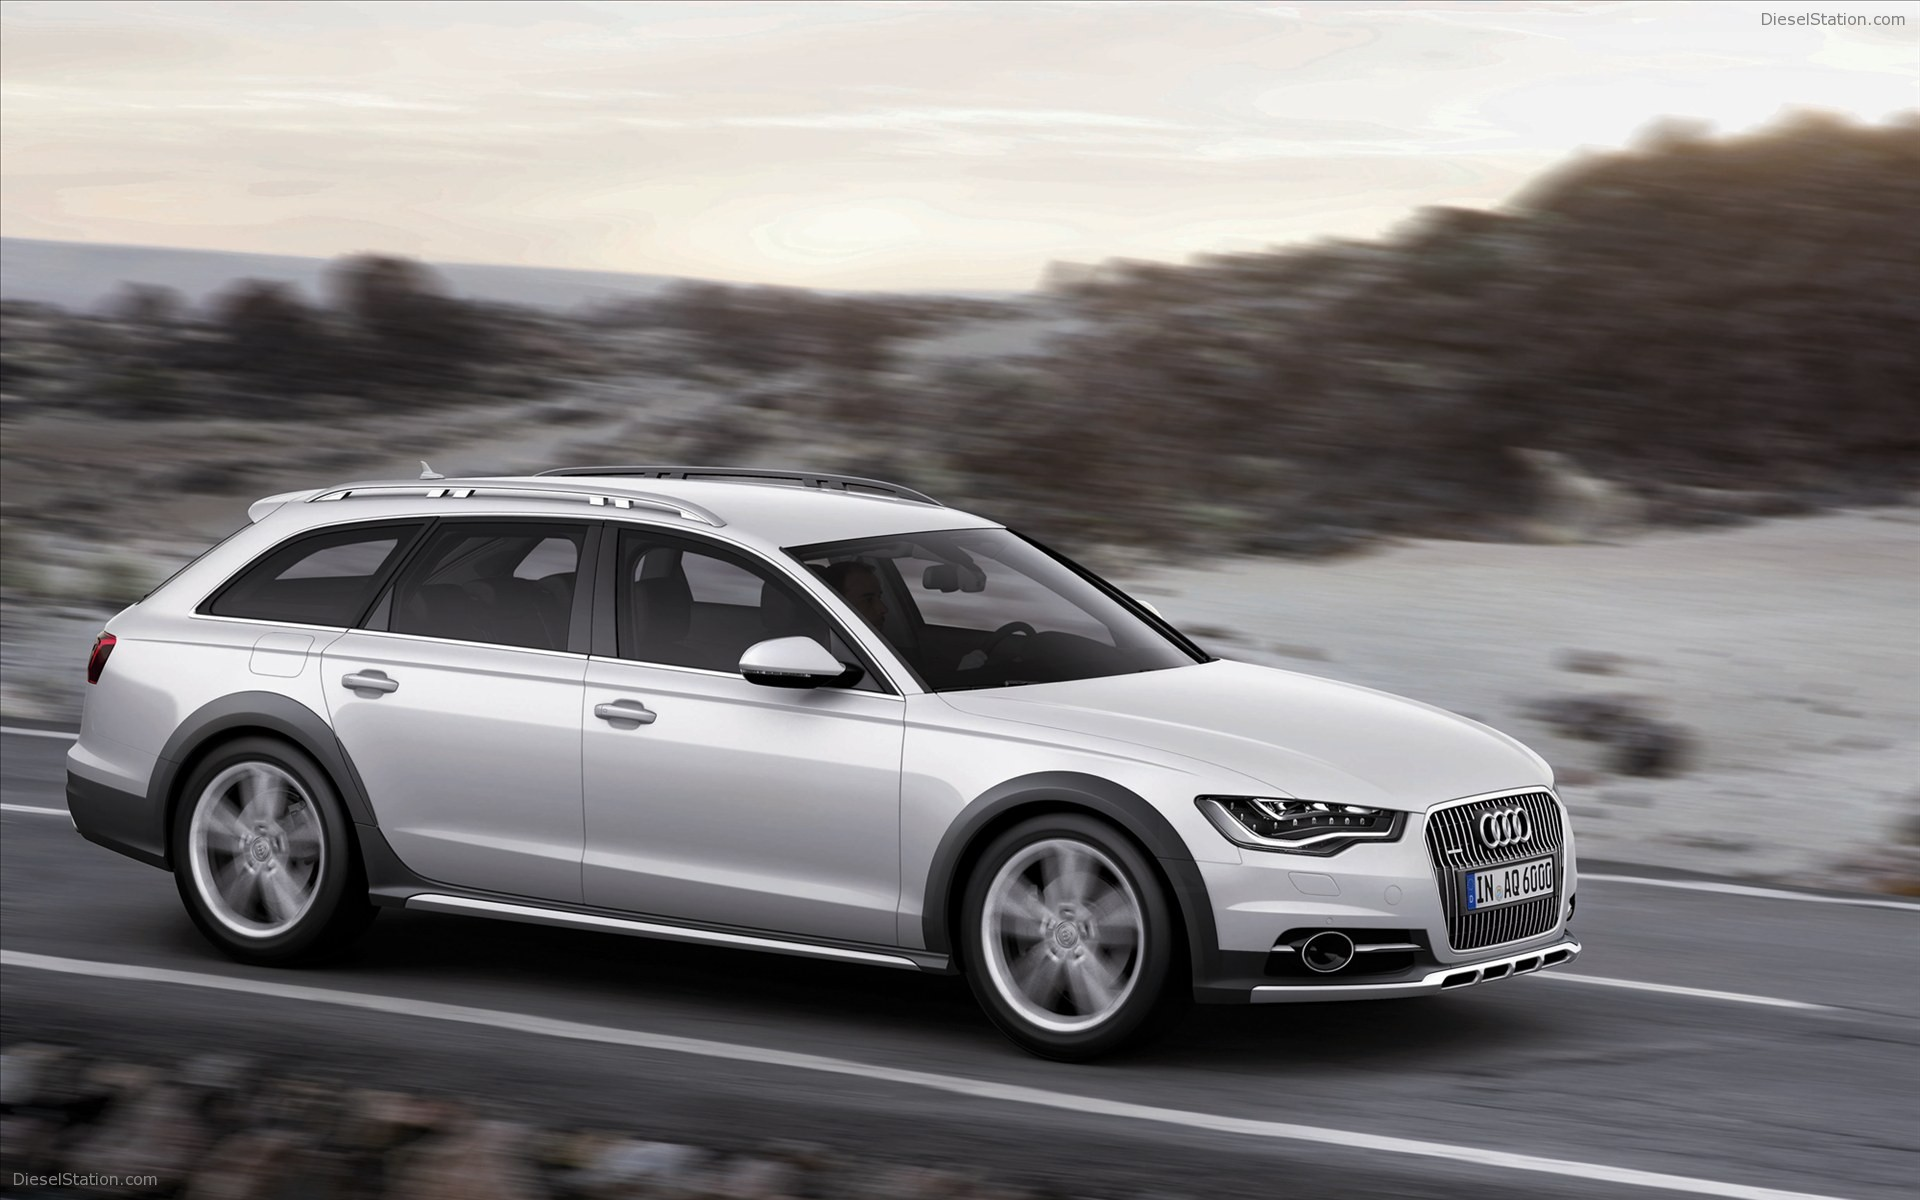 2012 Audi A6 Allroad Wagon 5-door